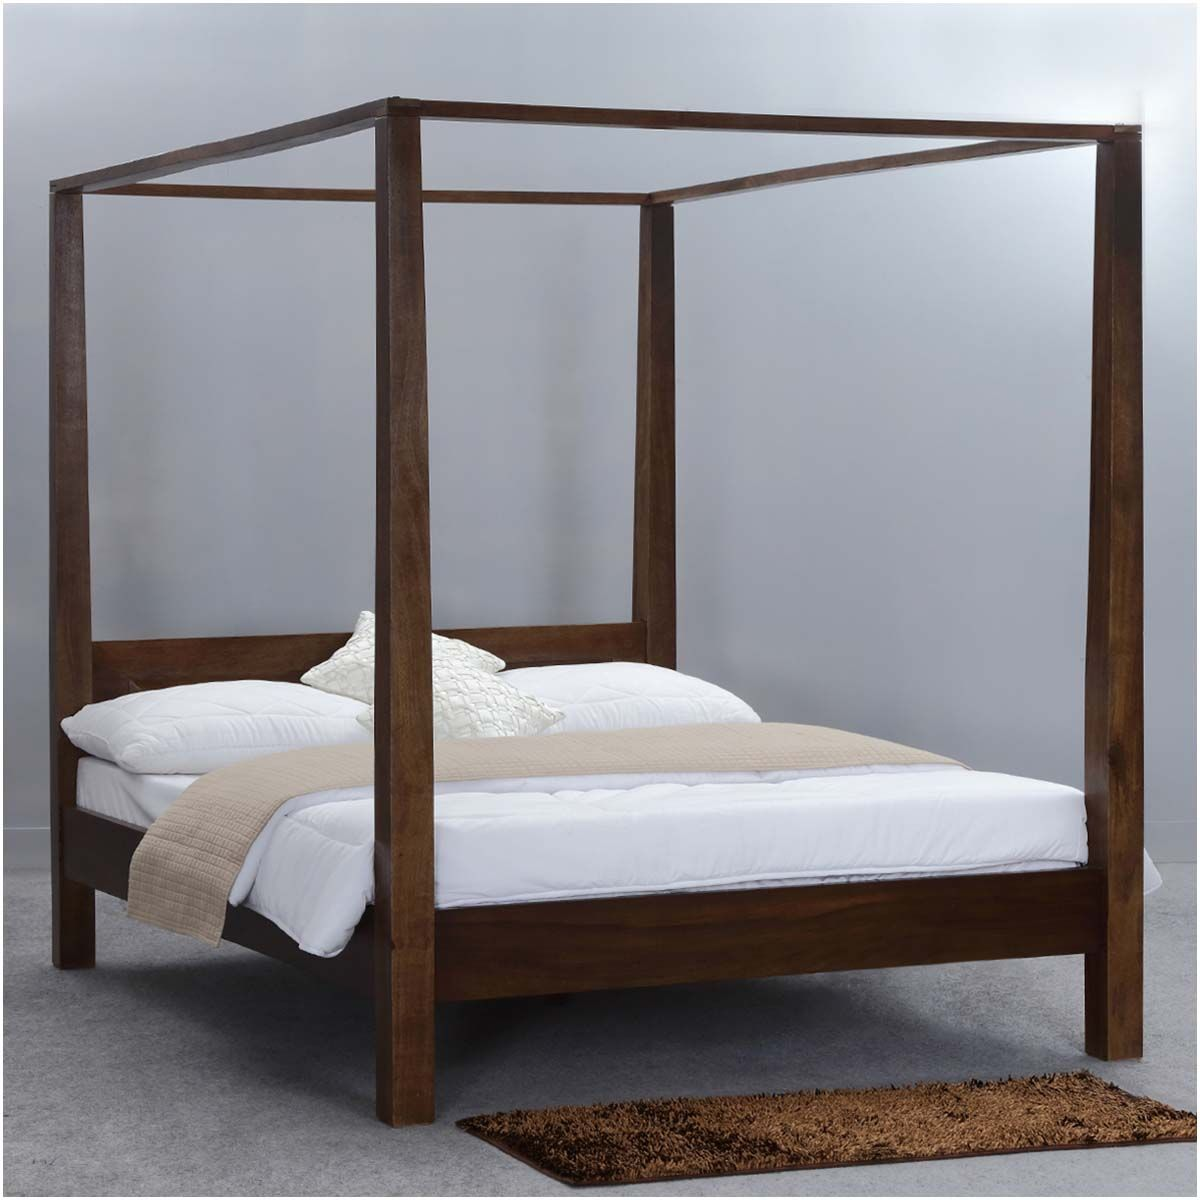 Contemporary Canopy Beds modern rustic philadelphia solid wood canopy bed | canopy beds